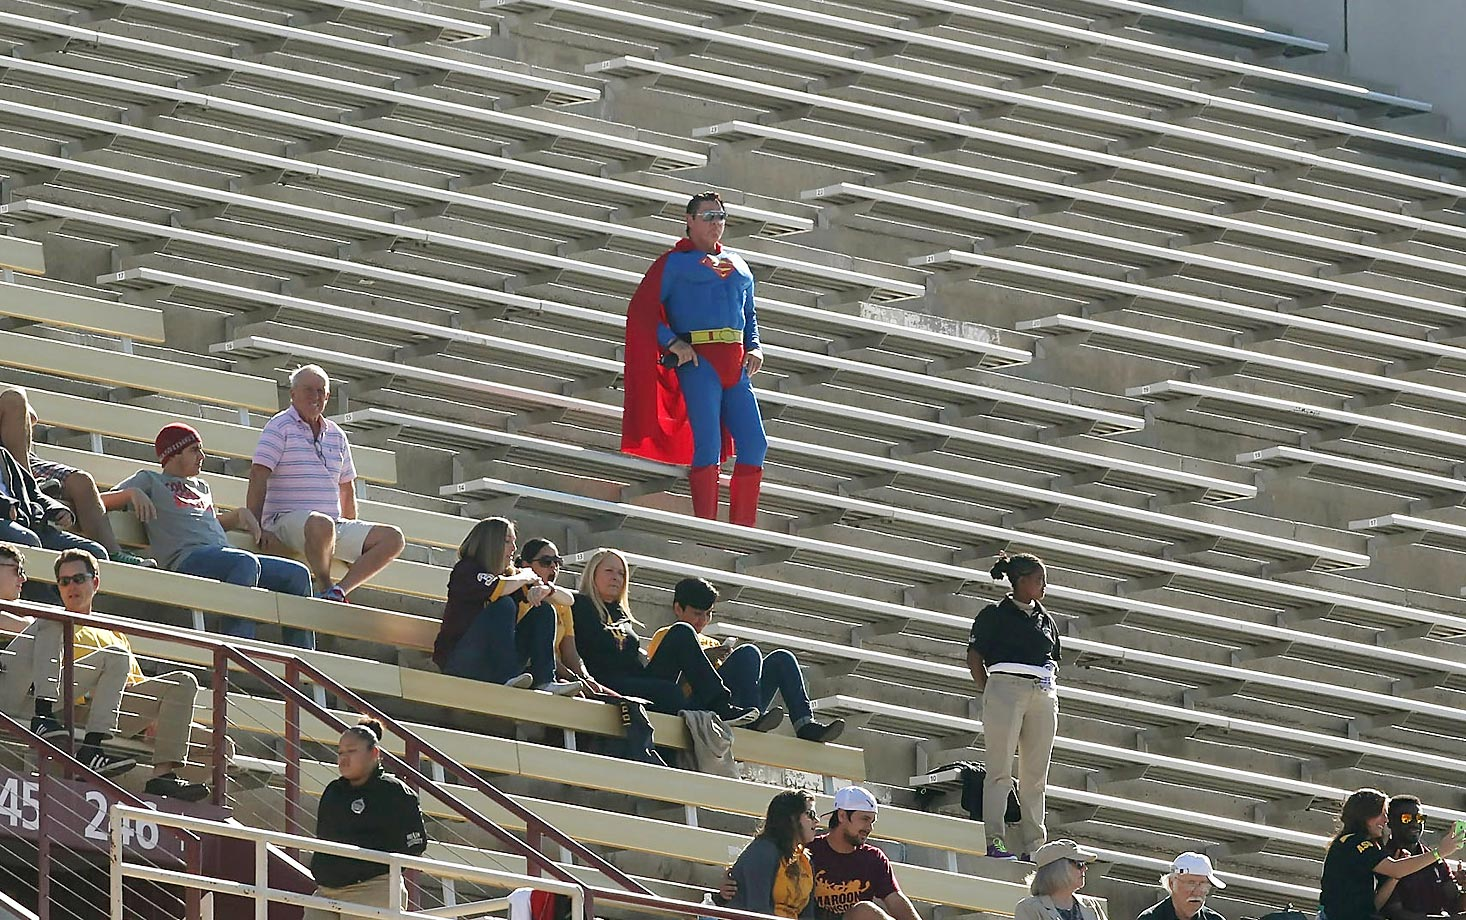 Superman was out in Arizona last week for the Arizona State game.